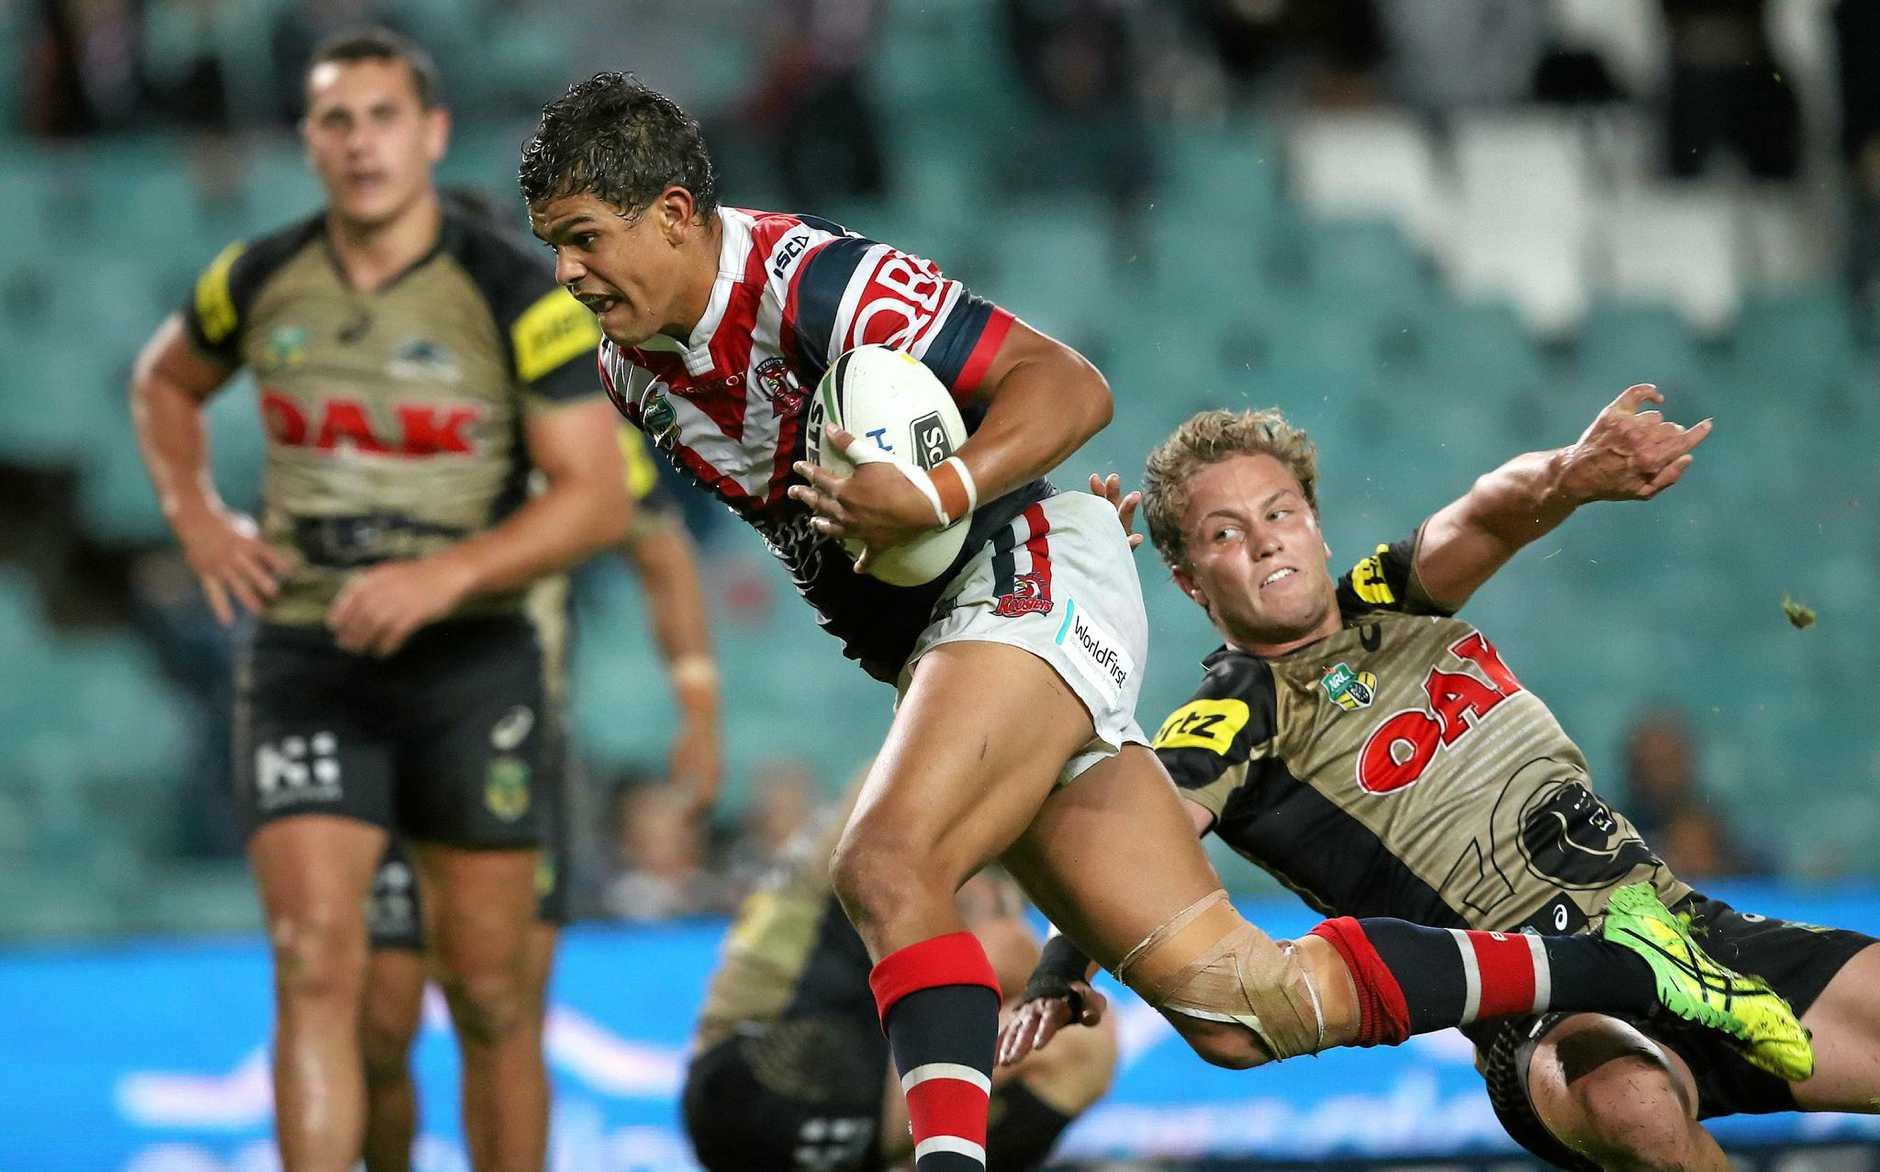 Sydney Roosters' Latrell Mitchell breaks with the ball to score his second try against the Penrith Panthers during the round 7 NRL match between the Penrith Panthers and the Sydney roosters at  Allianz Stadium in Sydney on Monday, April 18, 2016. (AAP Image/David Moir) NO ARCHIVING, EDITORIAL USE ONLY